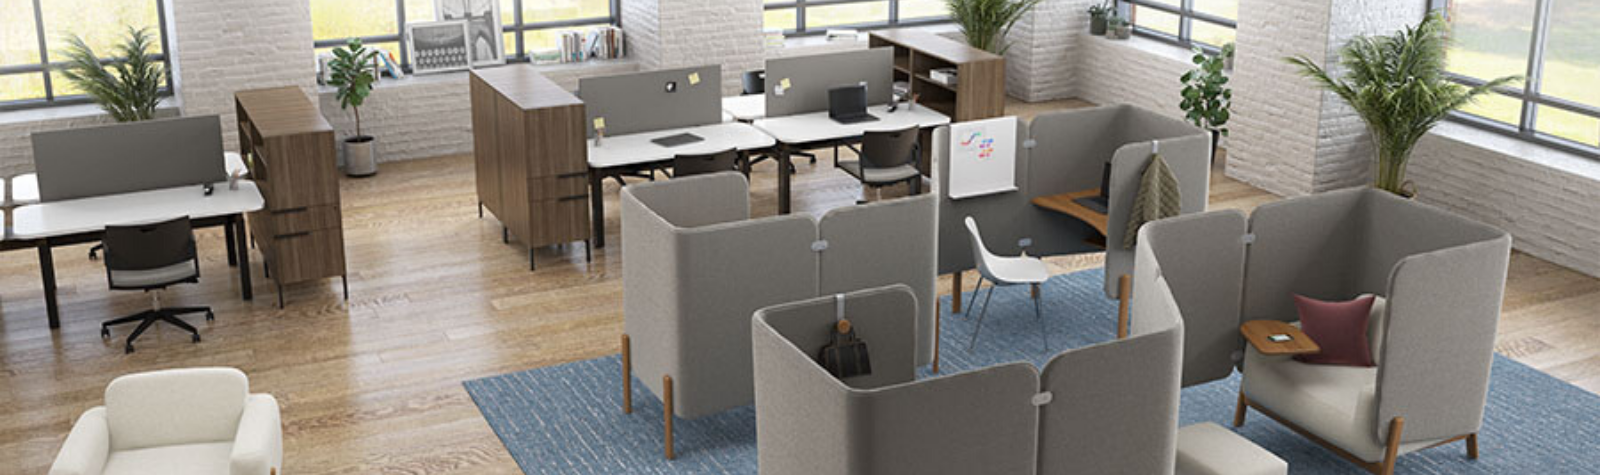 Office Furniture Material Cleaning Guide